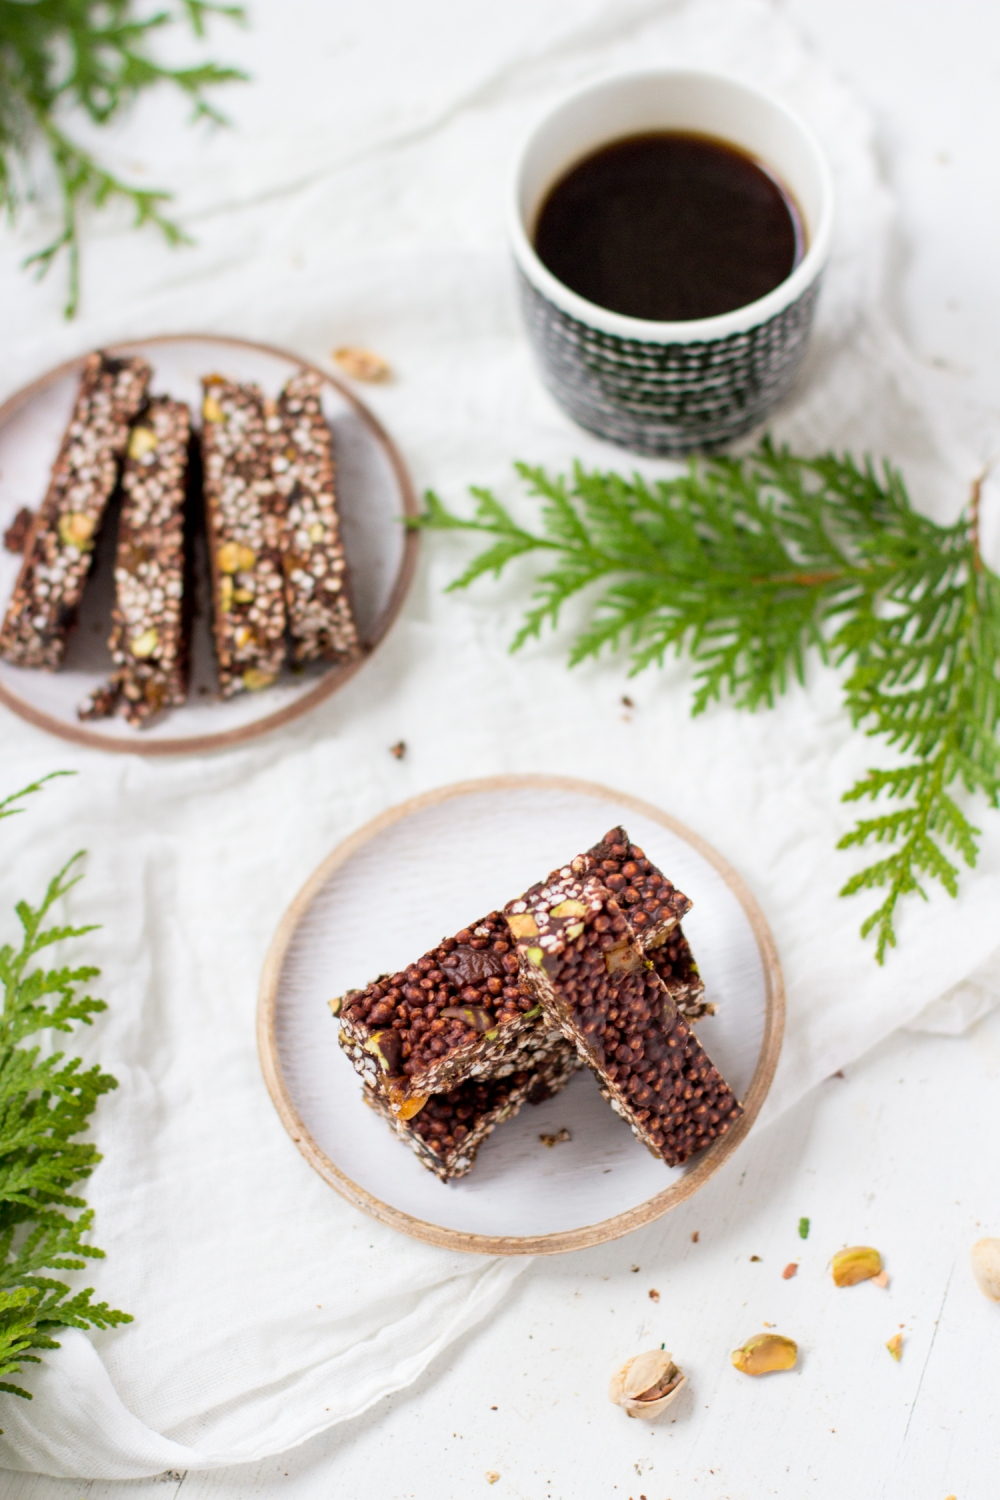 Chocolate quinoa bars